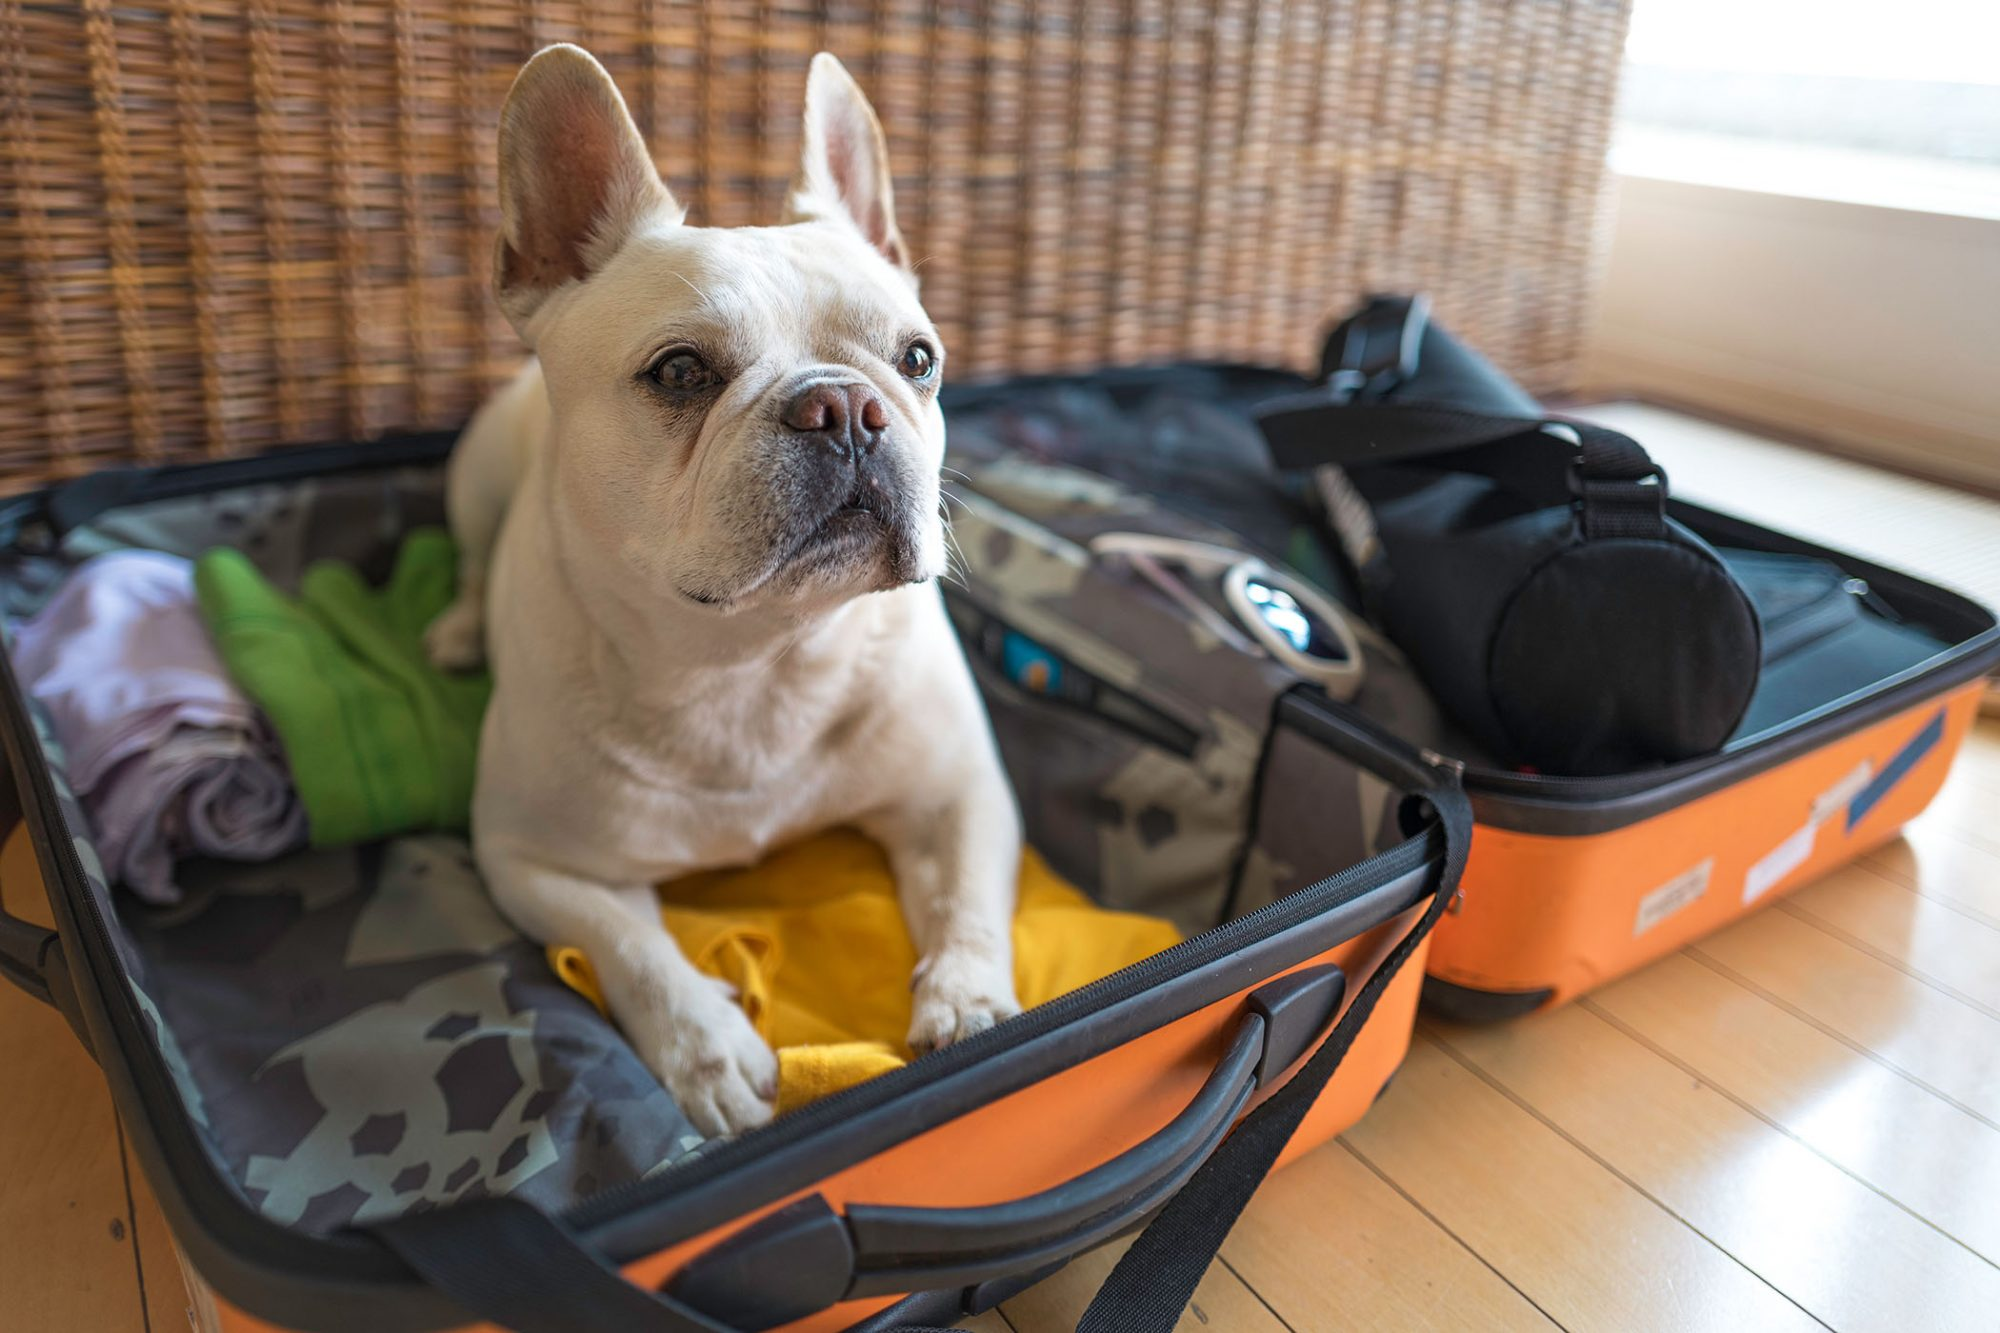 dog on packed clothes in a suitcase